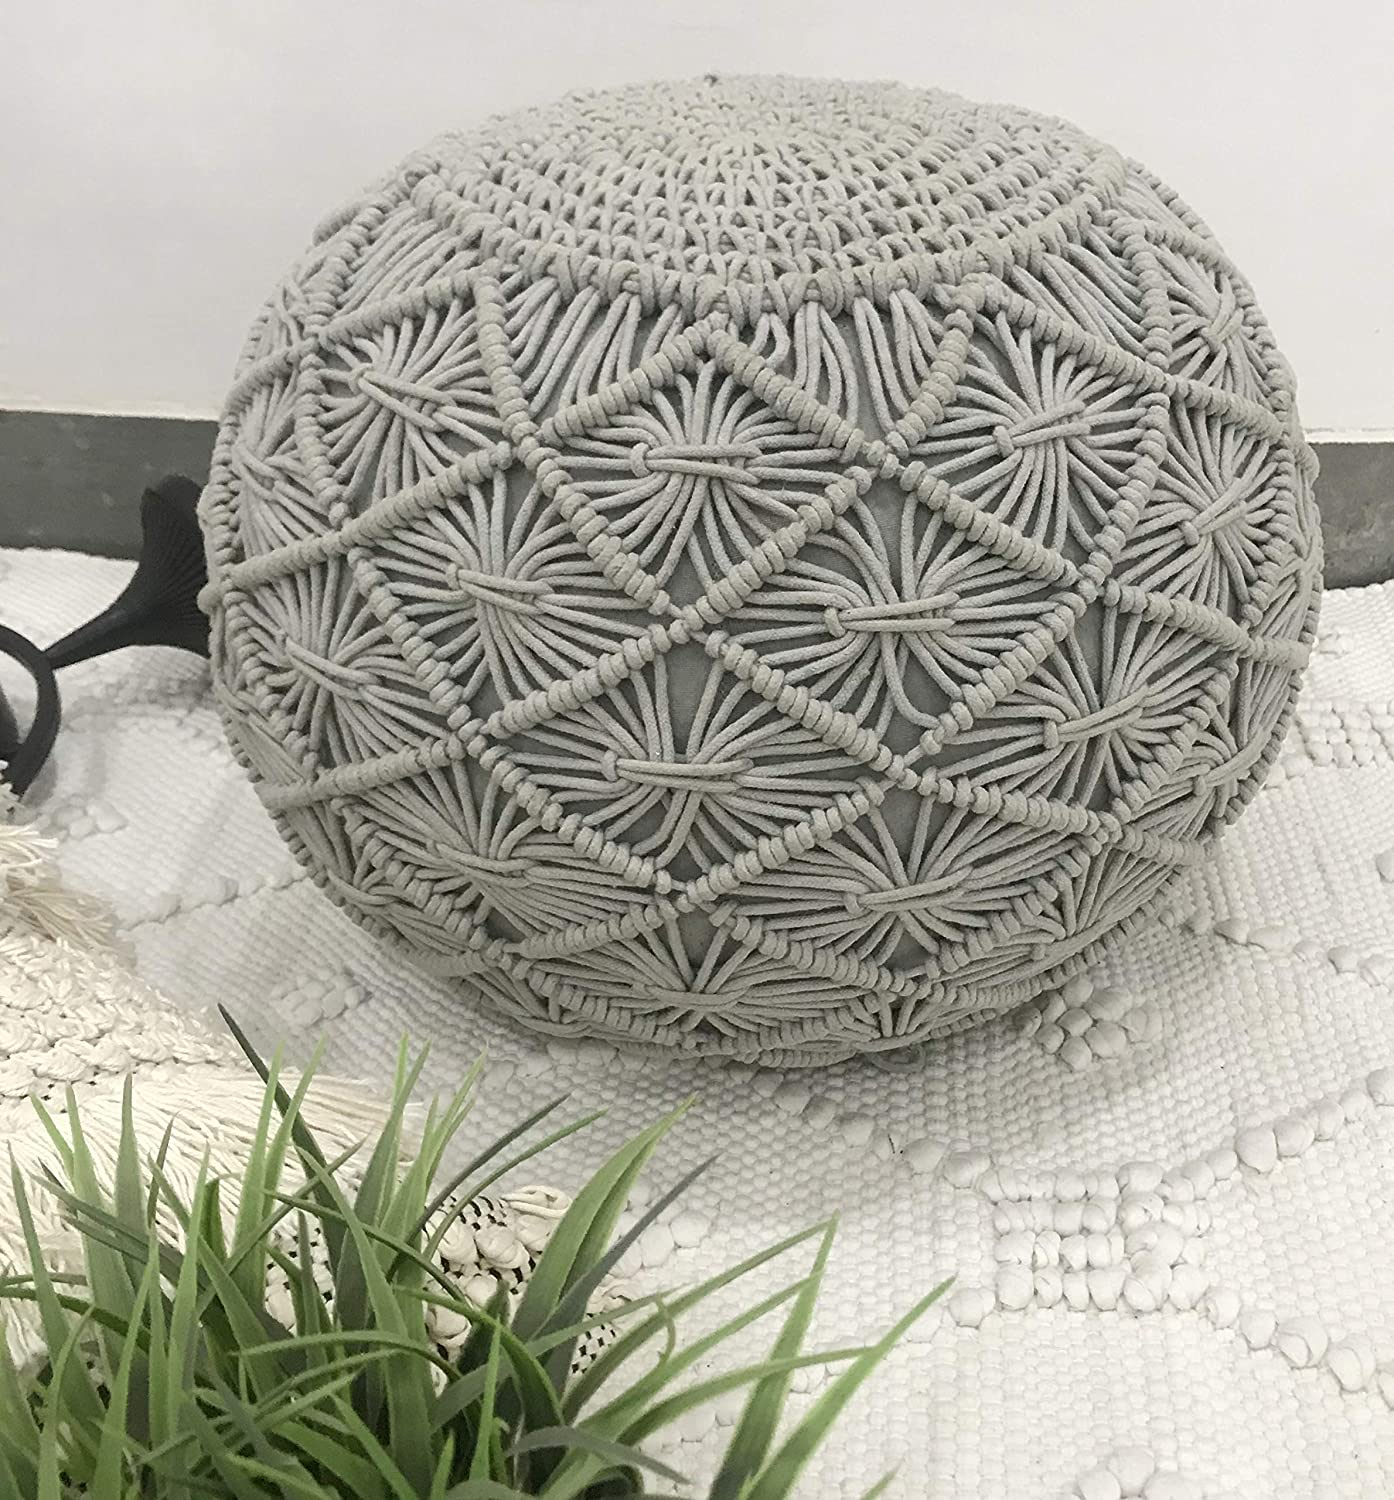 The Knitted Co. Cotton Pouf Handmade Macrame Ottoman - Farmhouse Rustic Accent Furniture - Footrest Round Bean Bag - for Living Room Bedroom Kids Room (Light Grey, 18